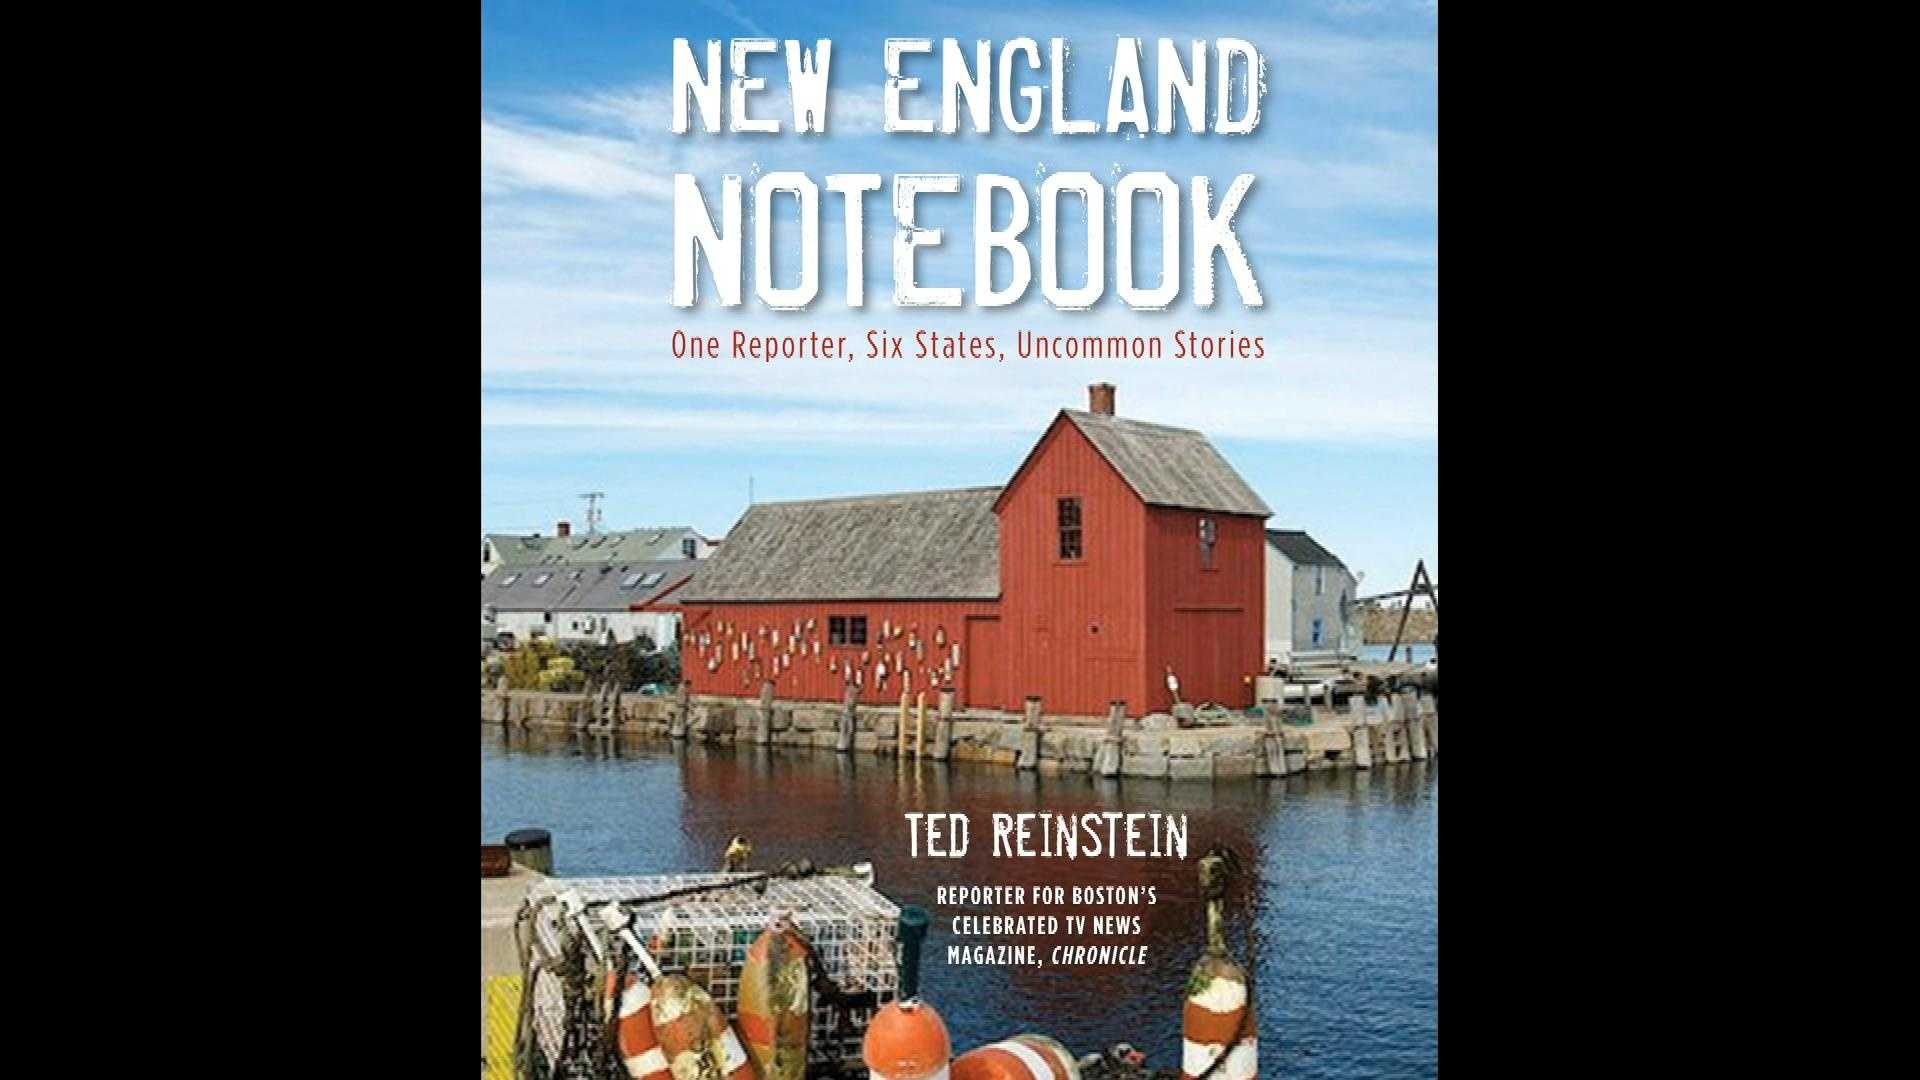 Image: New England Notebook